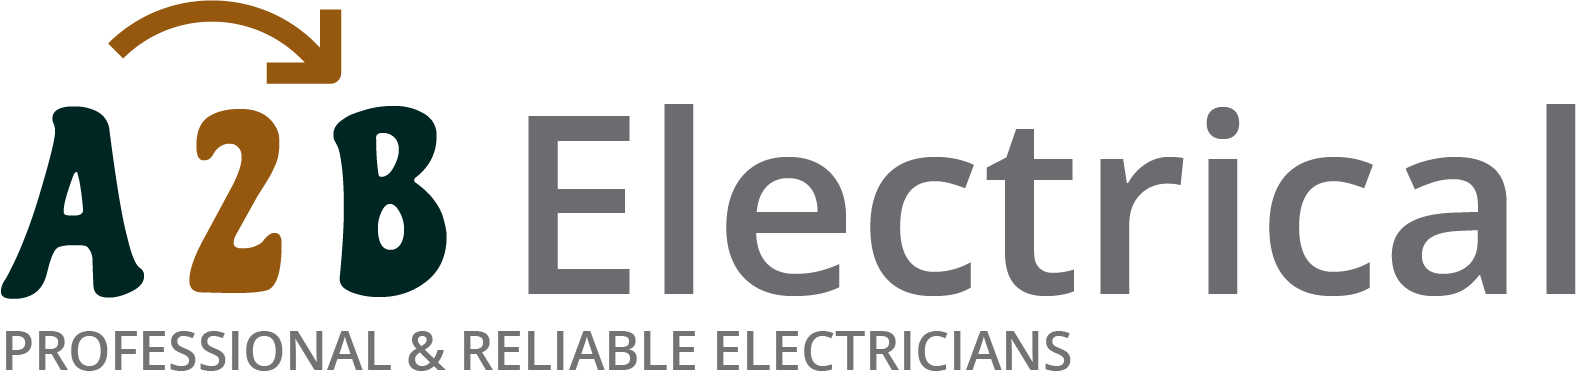 If you have electrical wiring problems in Camberwell, we can provide an electrician to have a look for you.